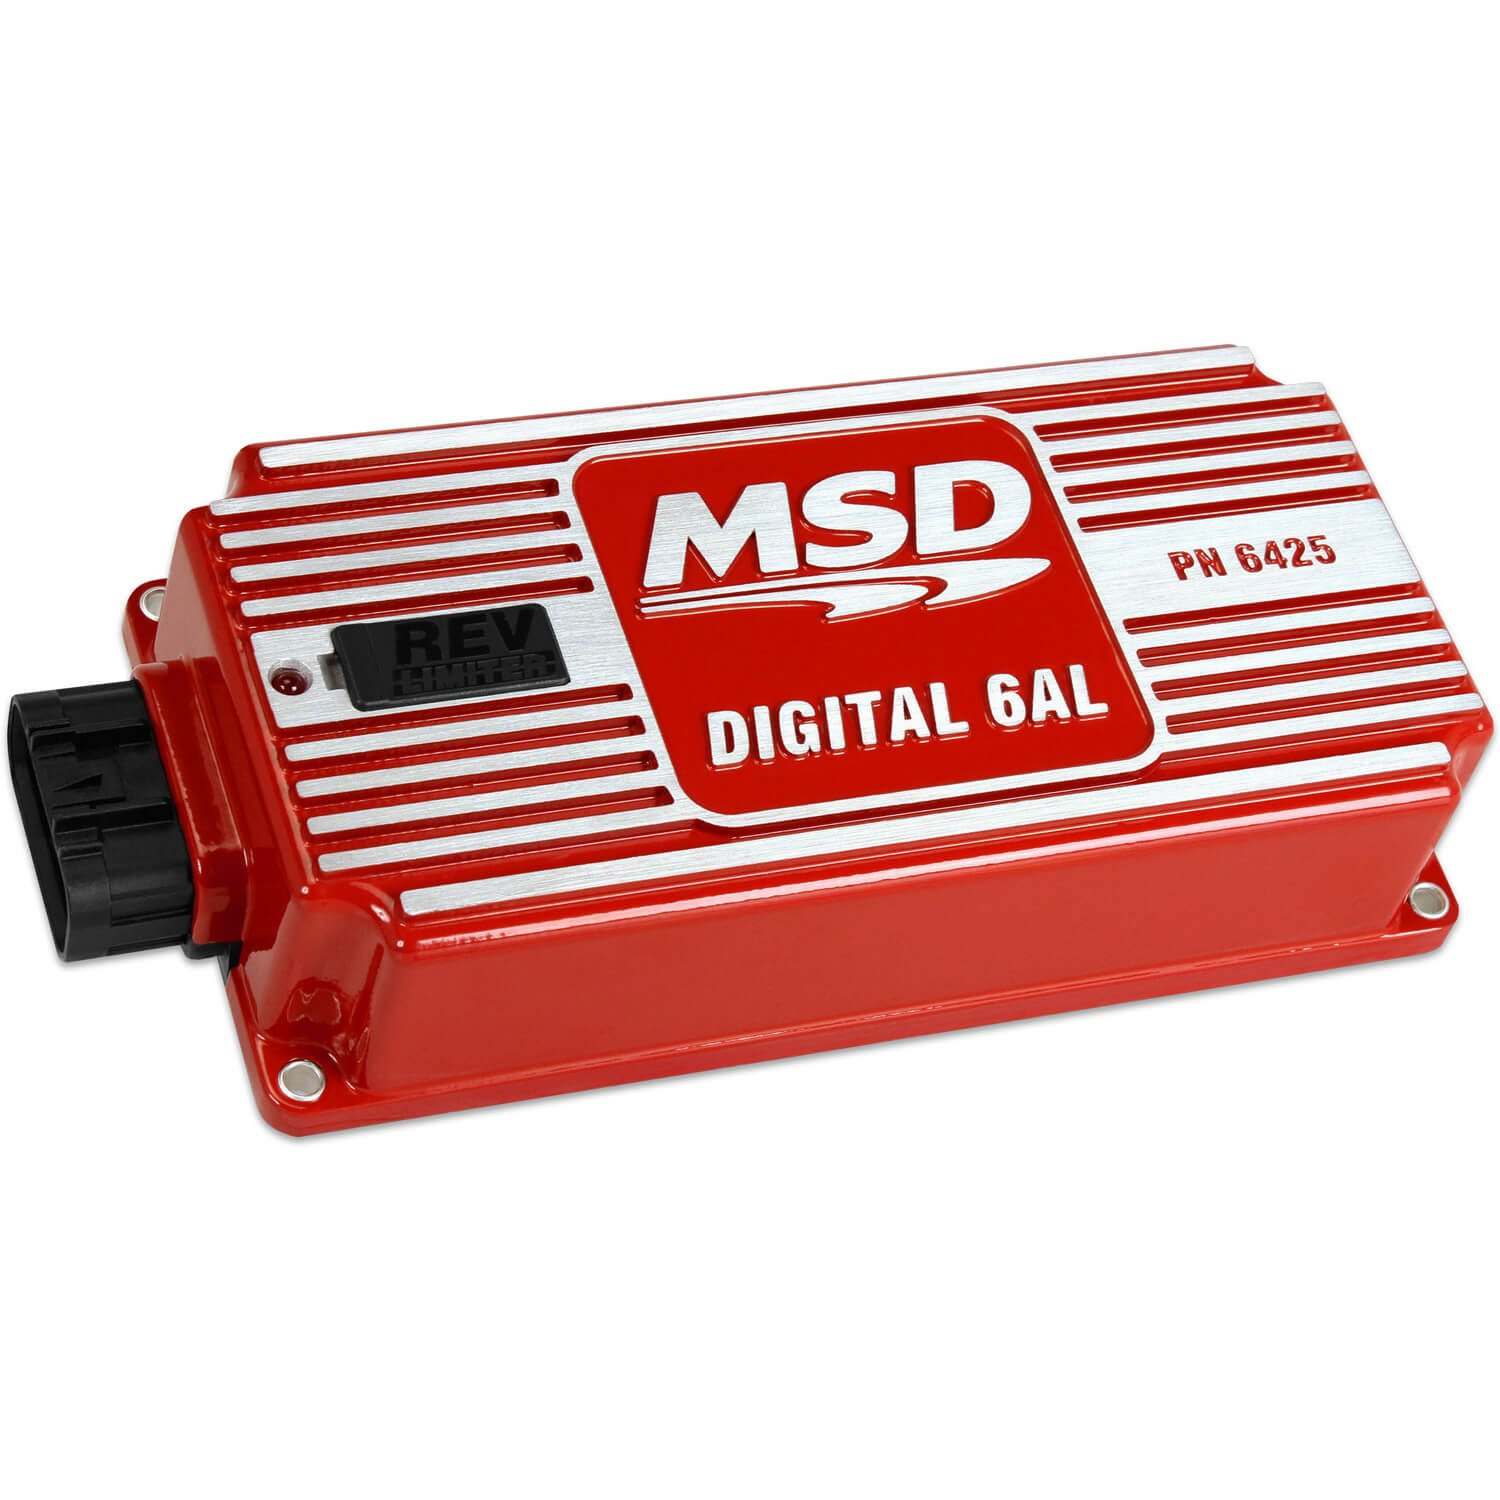 Msd Al6 Wiring Diagram 6425 6al Digital Data Ignition Control Box